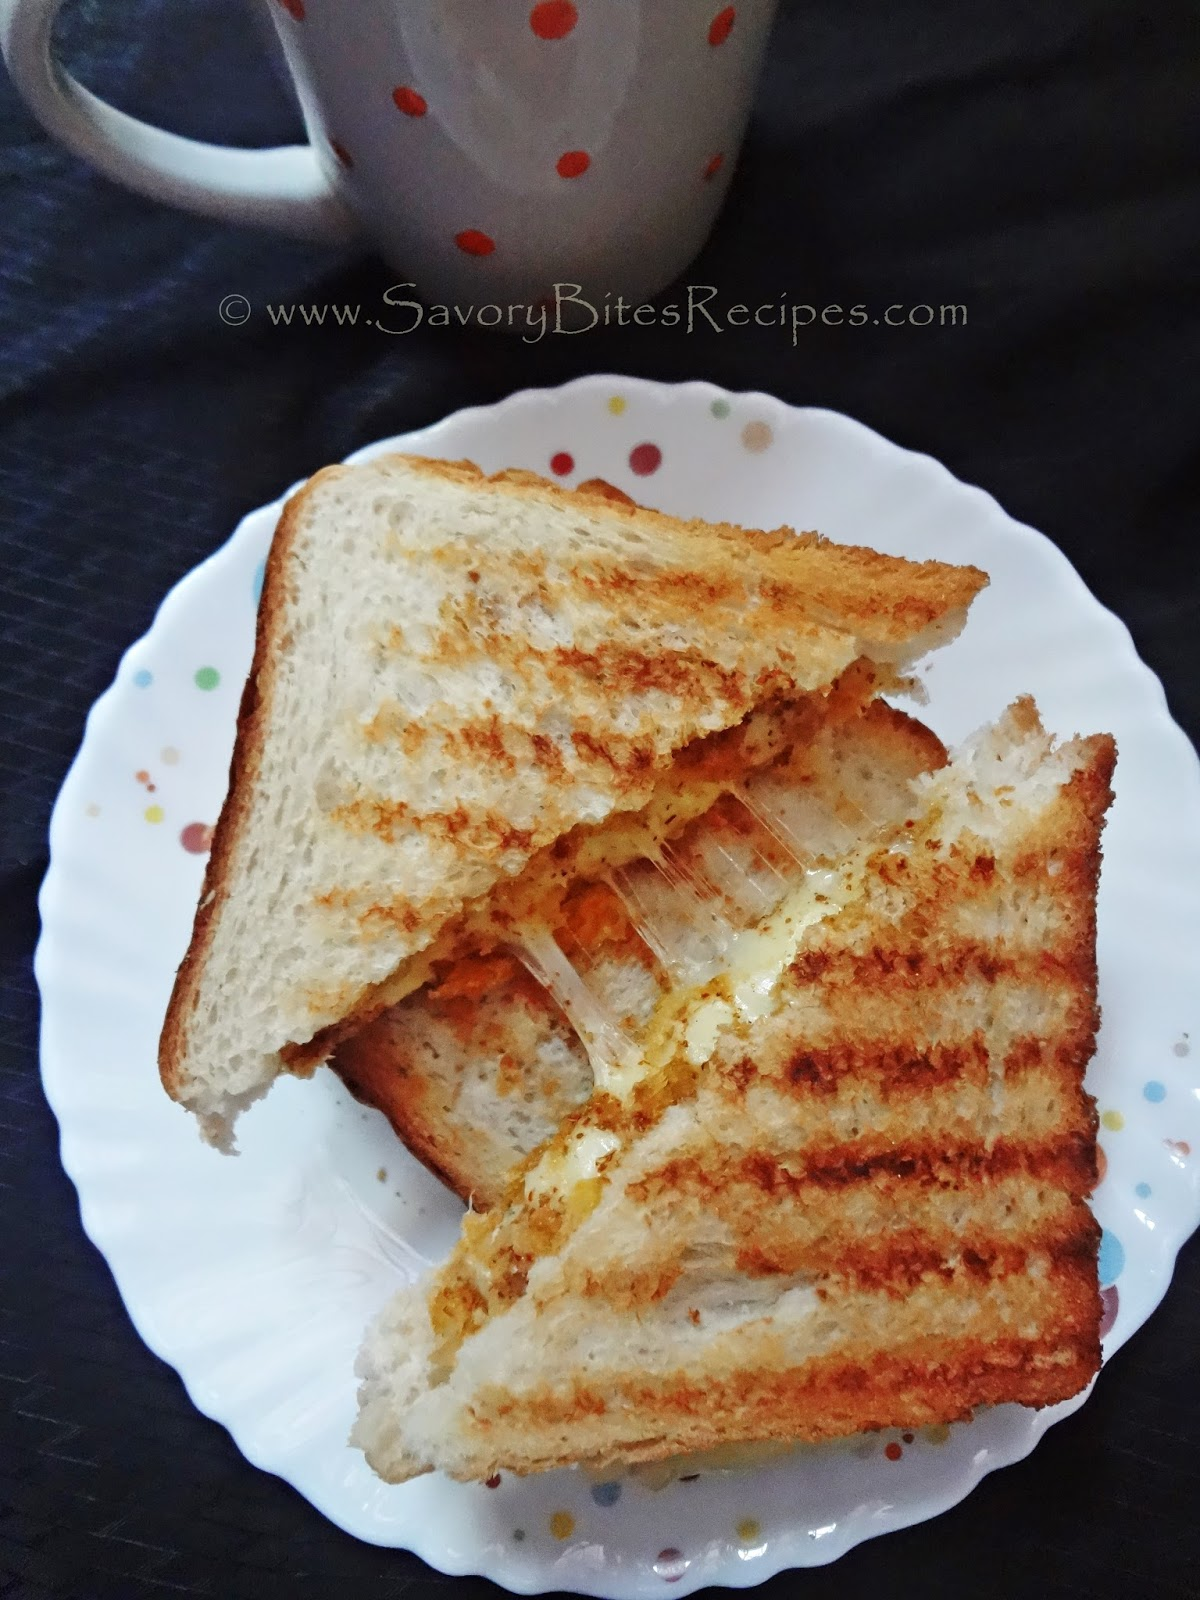 Grilled Cheese Sandwich - Savory Bites Recipes